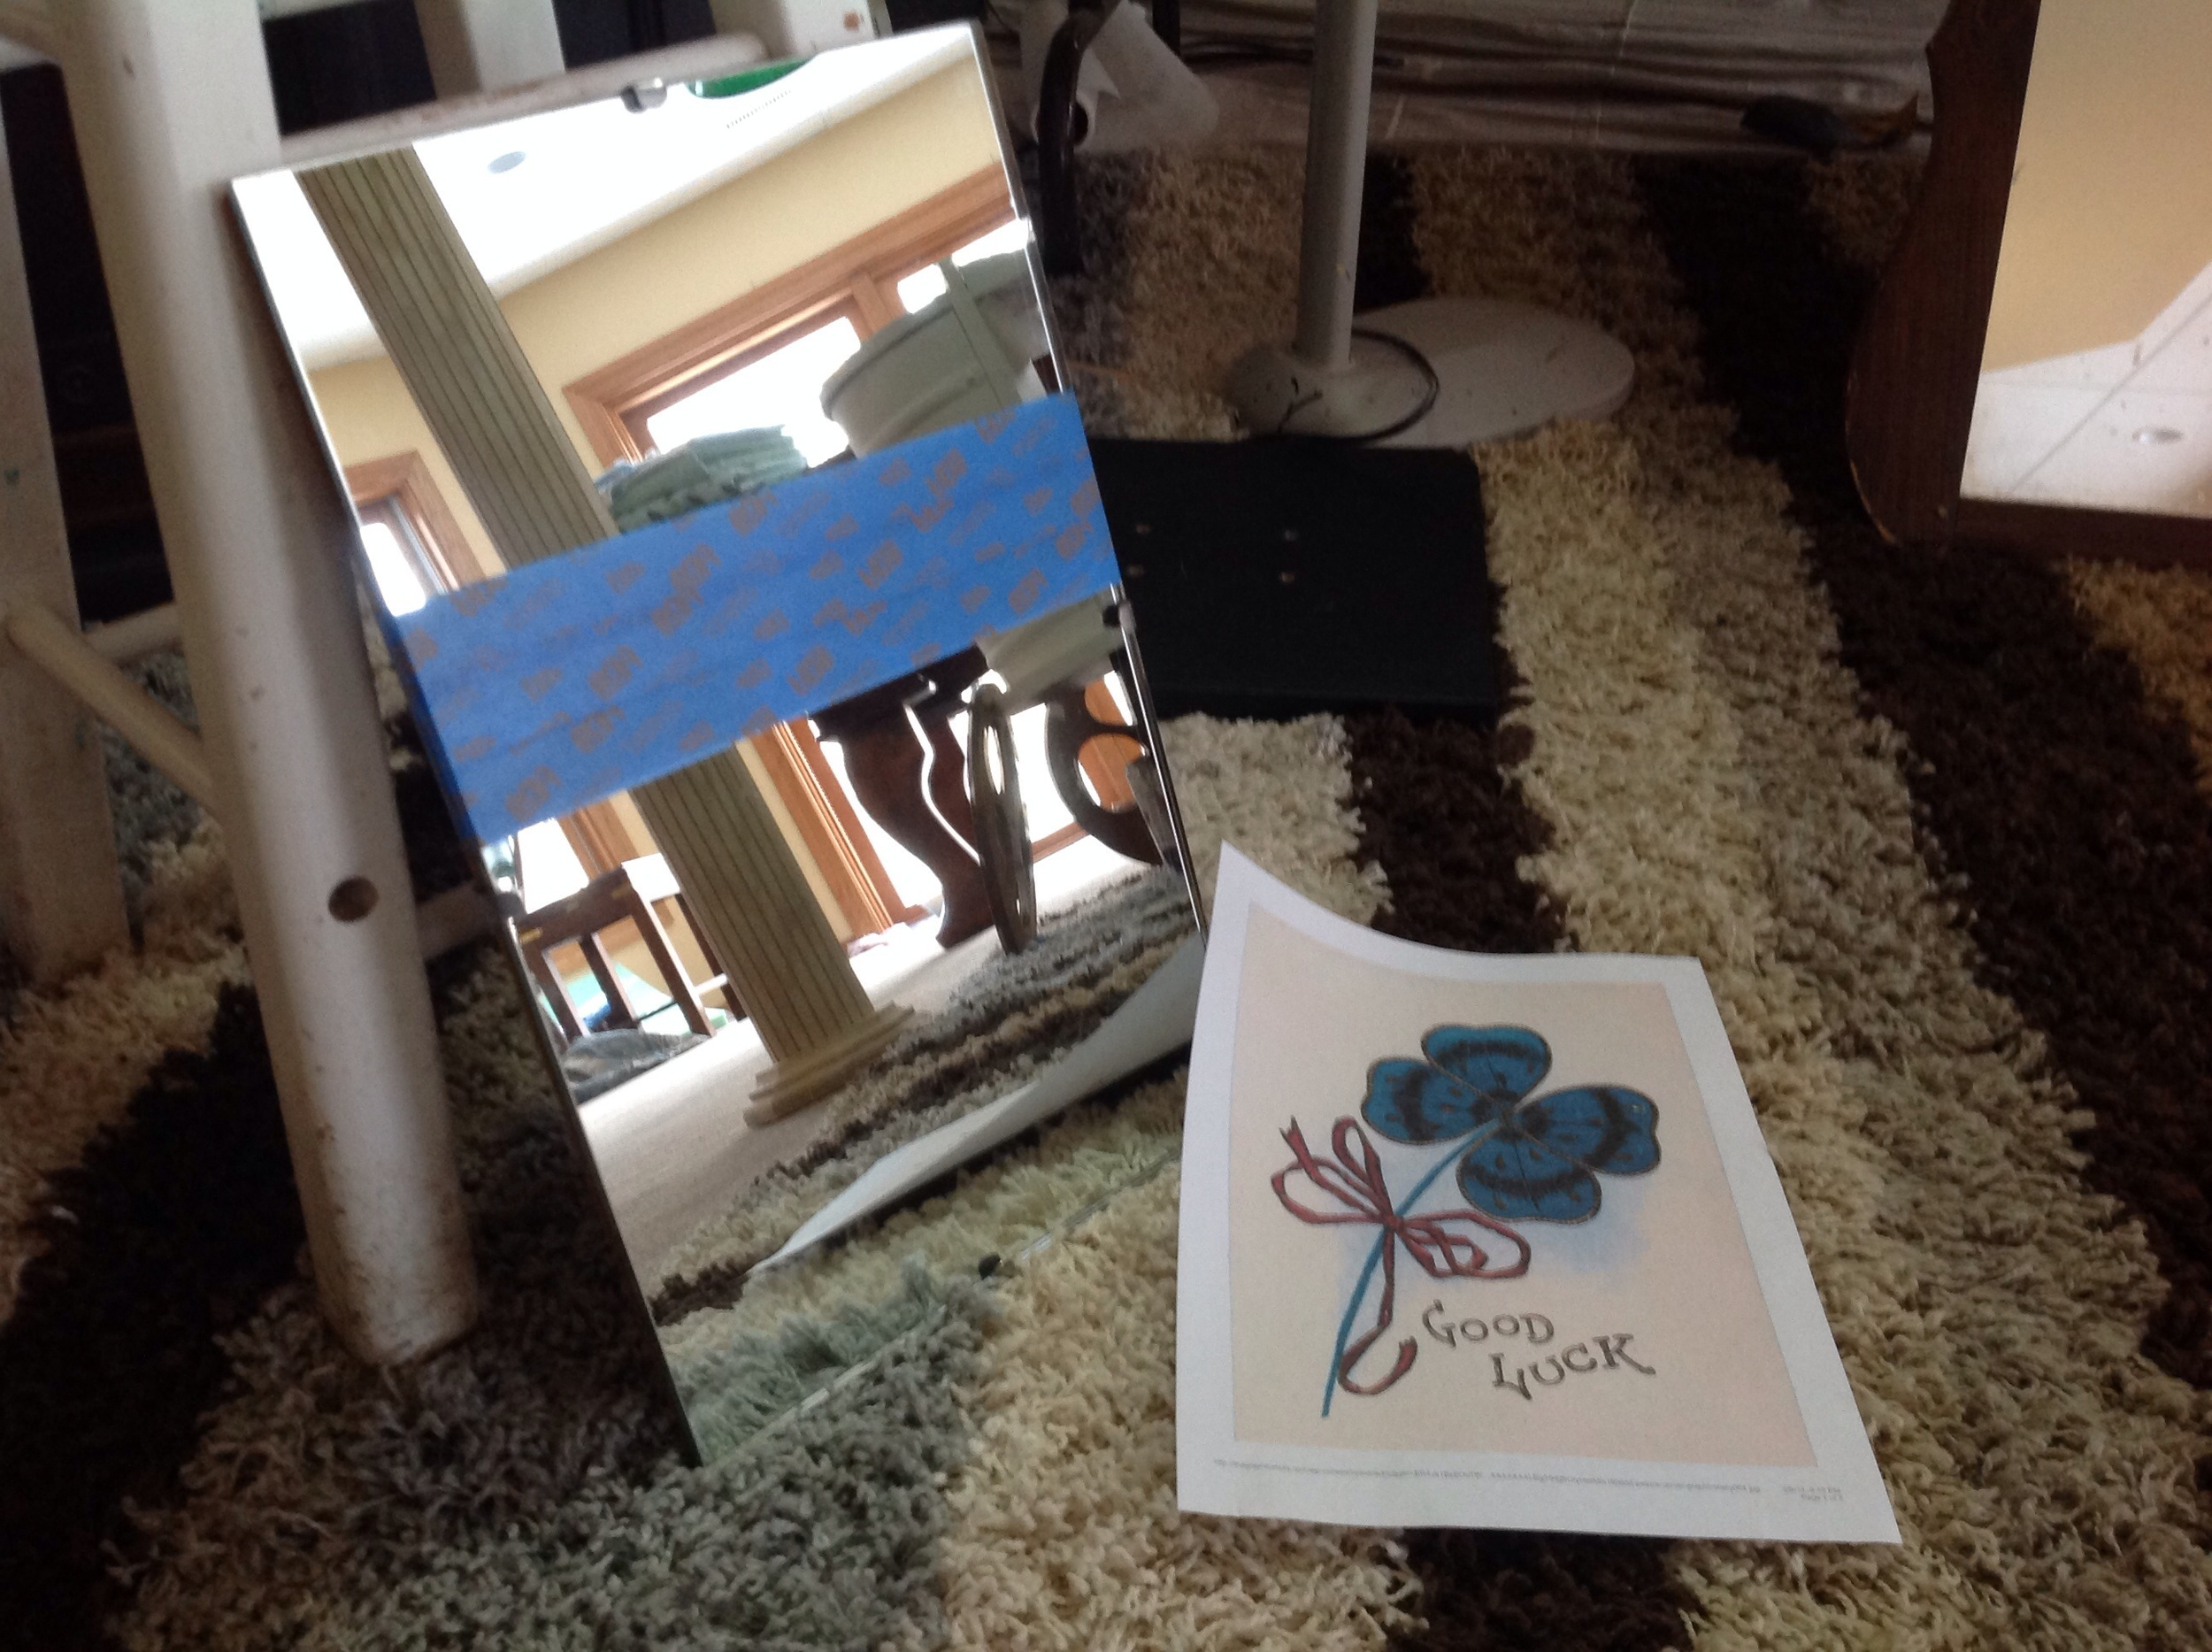 Using blue painters tape, tape the entire surface pressing down firmly as you go. You're going to cover most of the mirror.